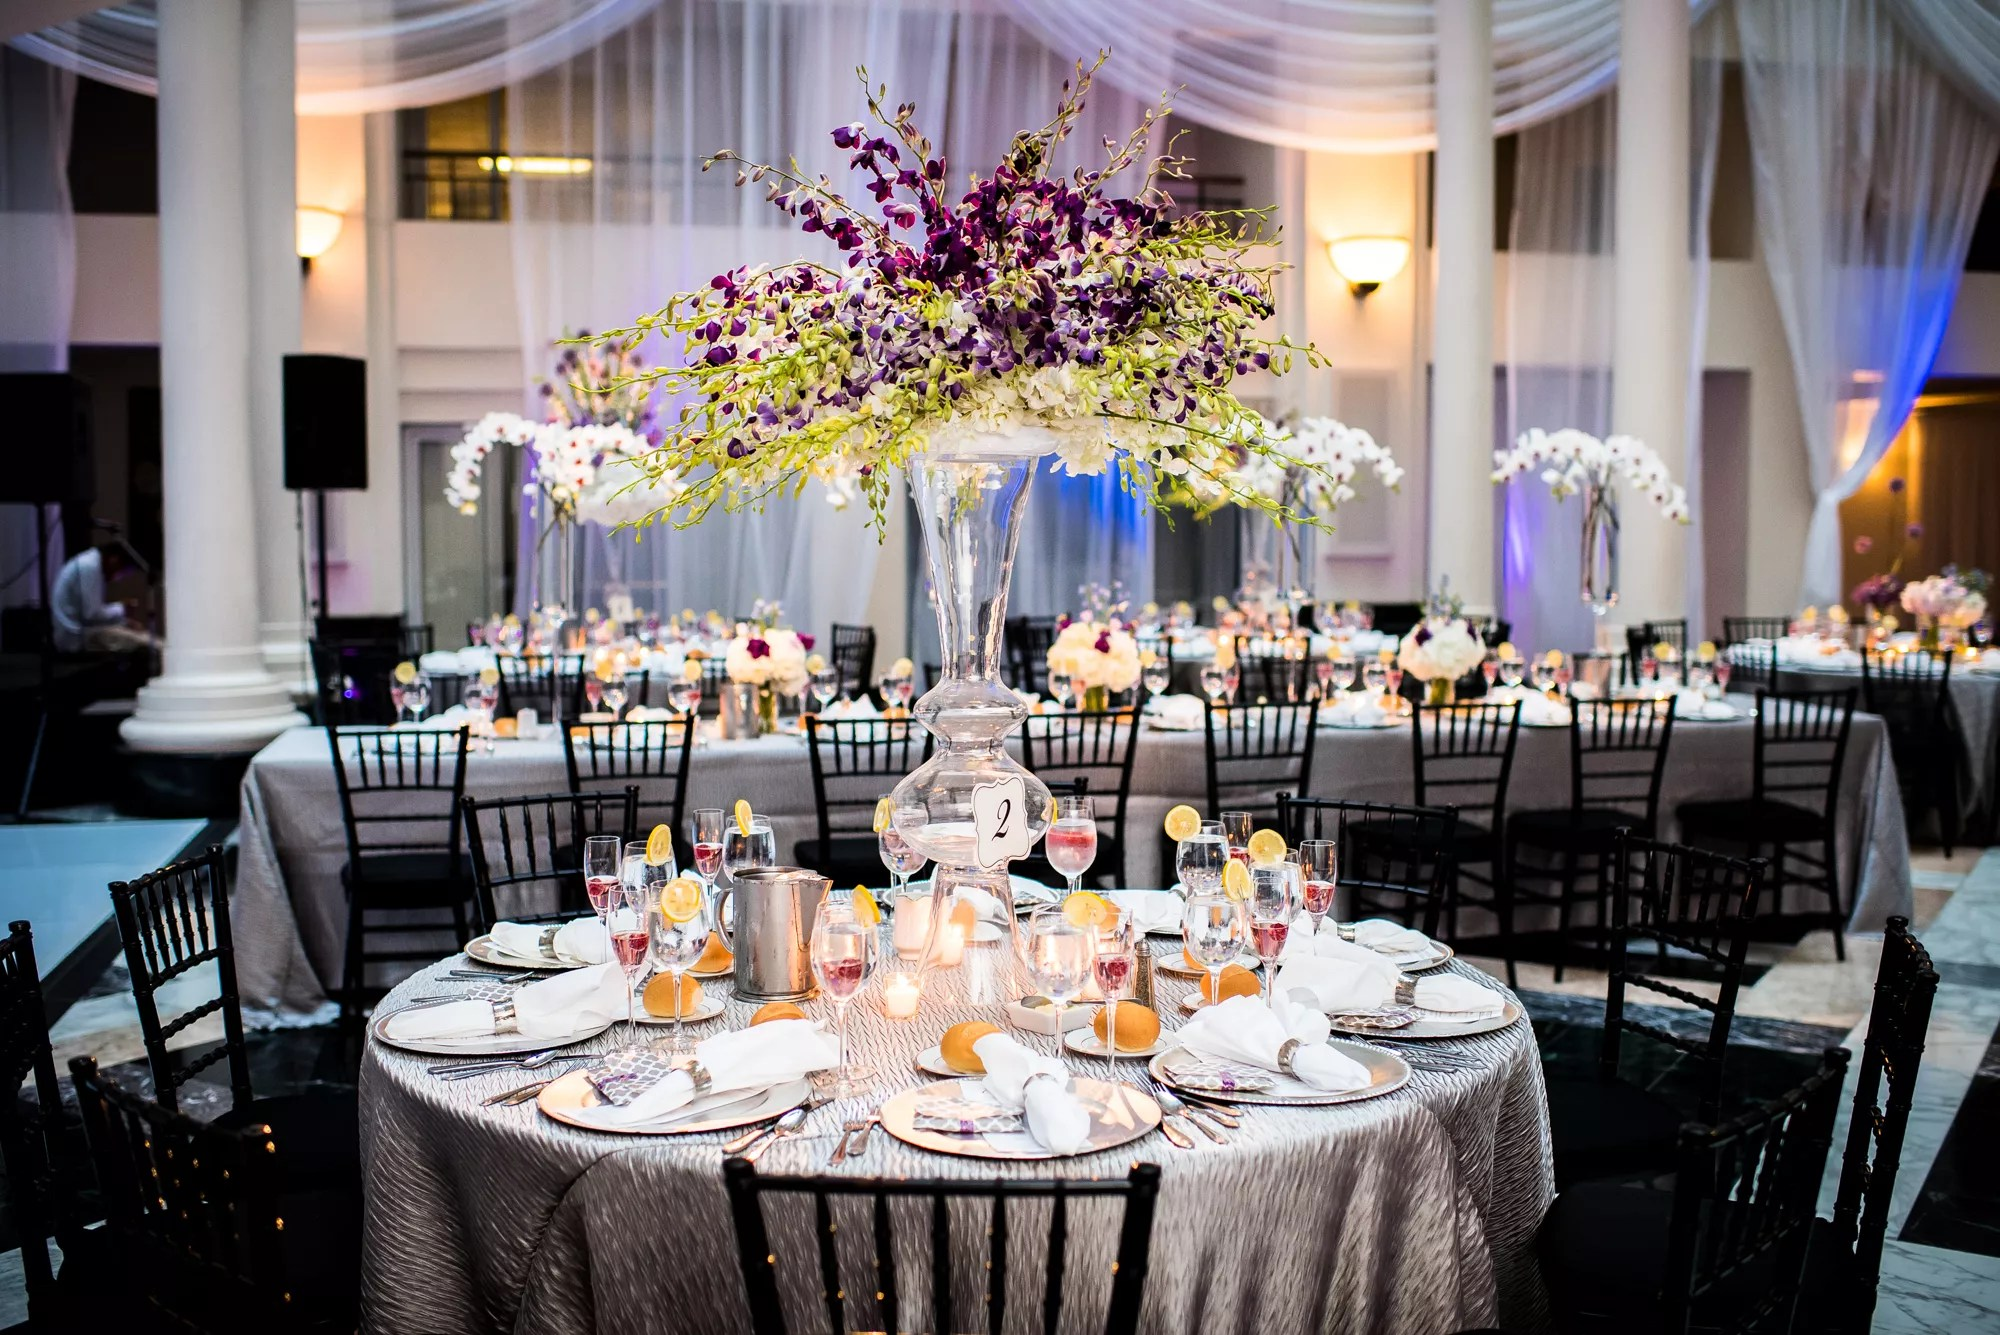 Silver Dining Tables With Black Chiavari Chairs